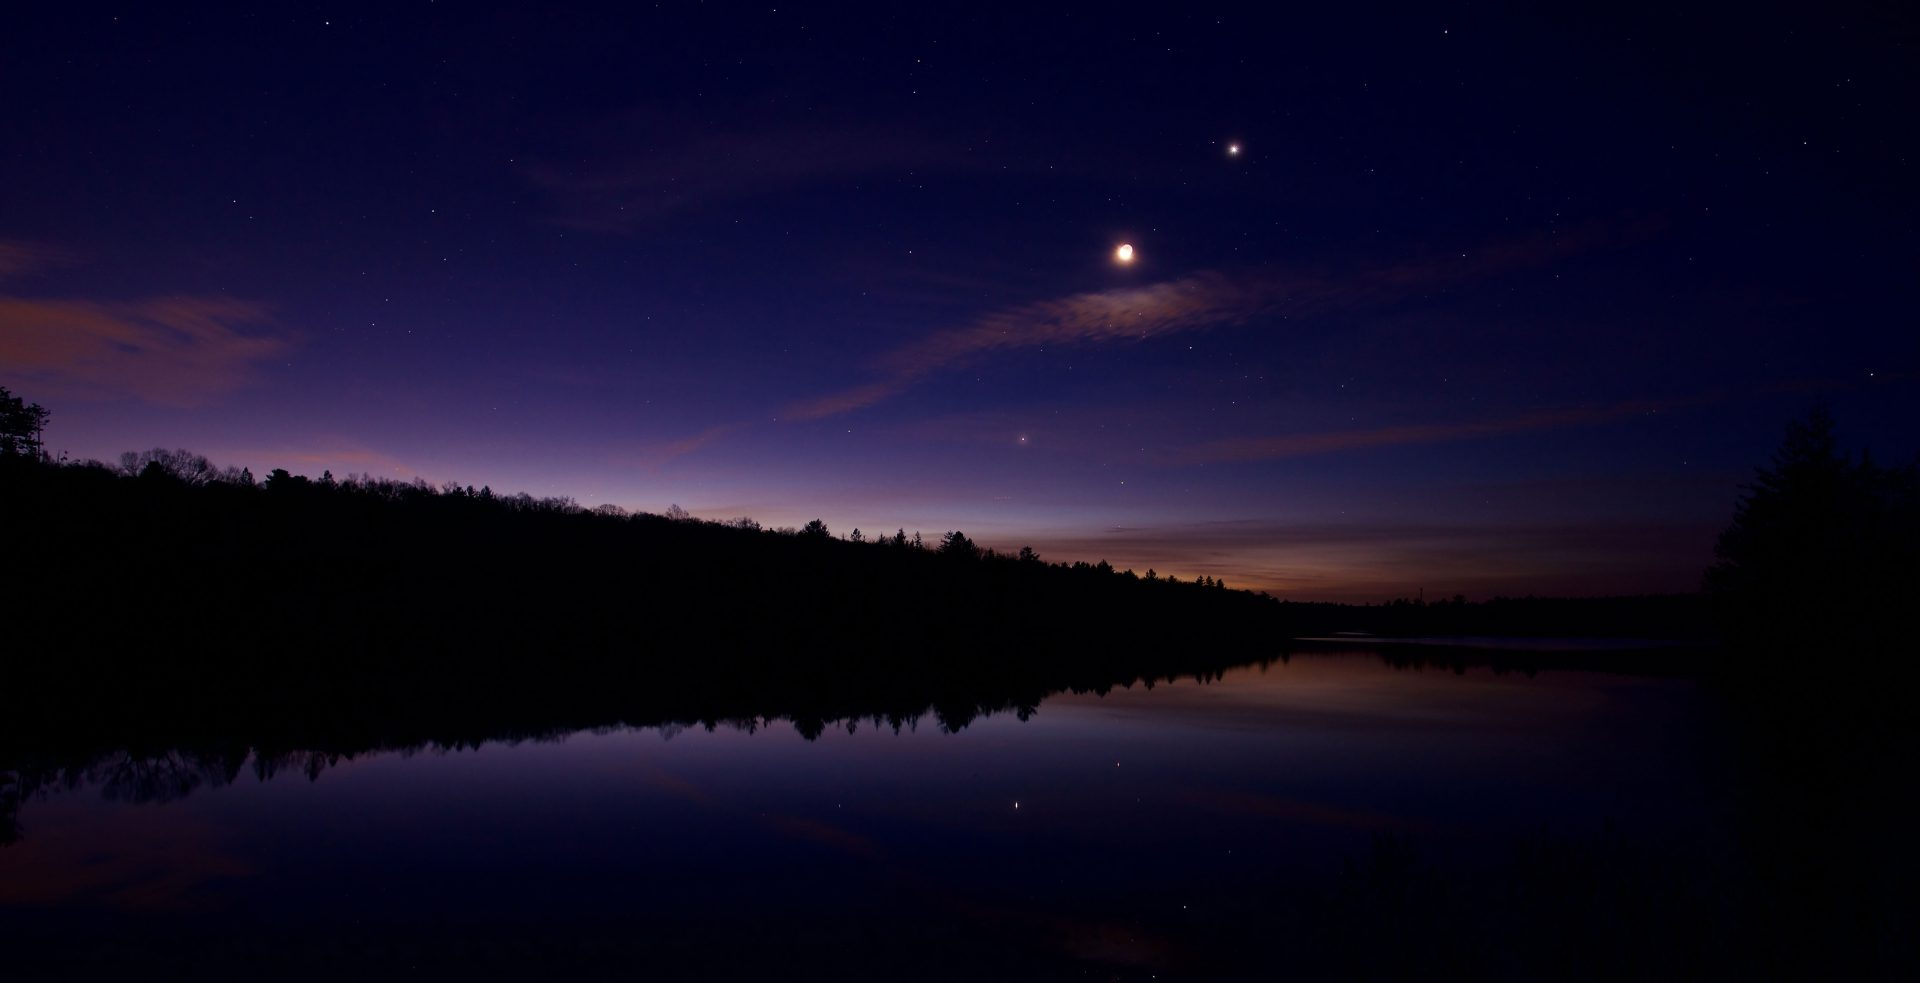 Venus-Jupiter conjunction happening this weekend